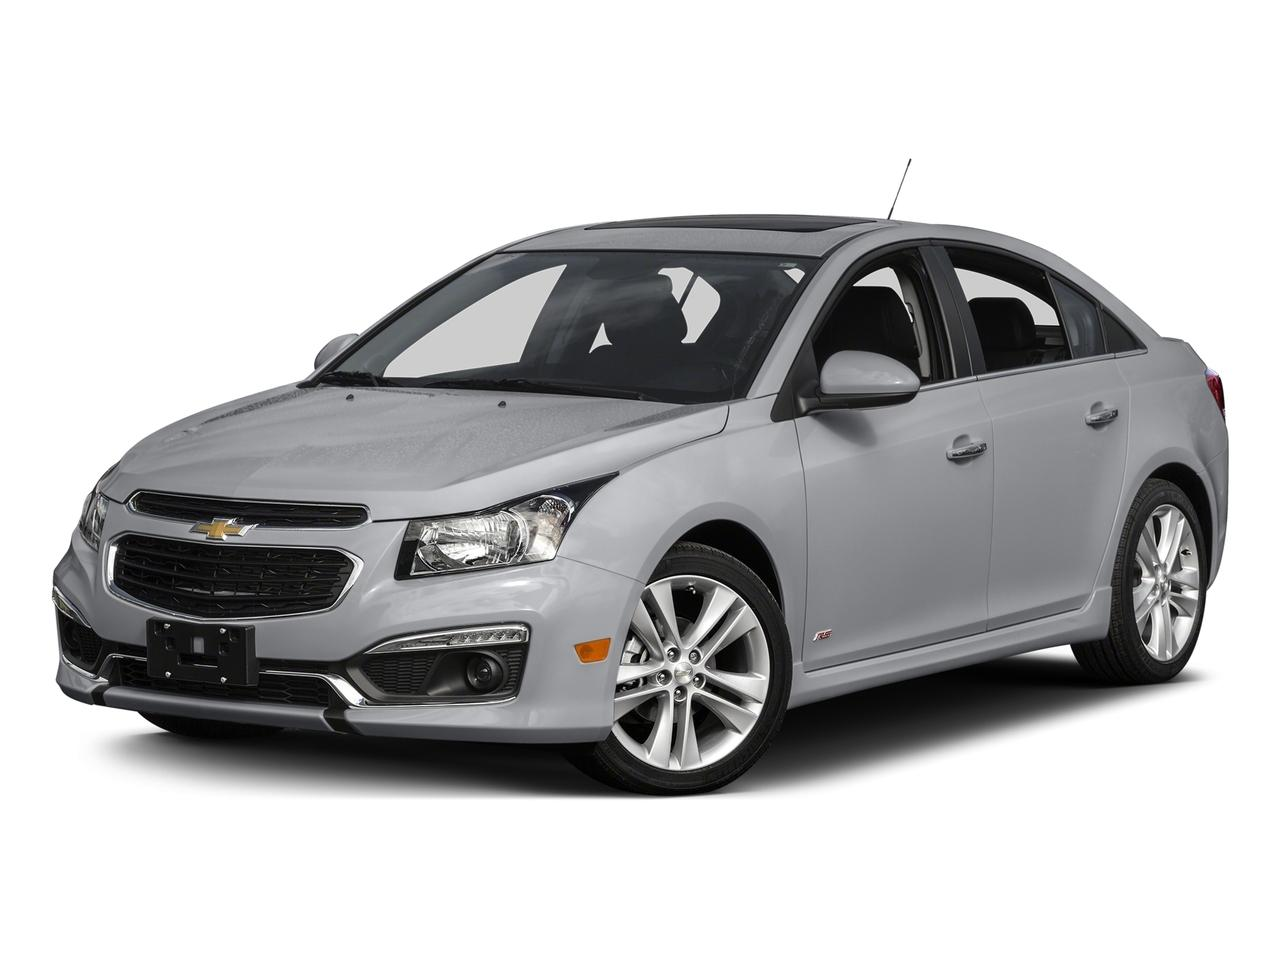 2015 Chevrolet Cruze Vehicle Photo in BOONVILLE, IN 47601-9633